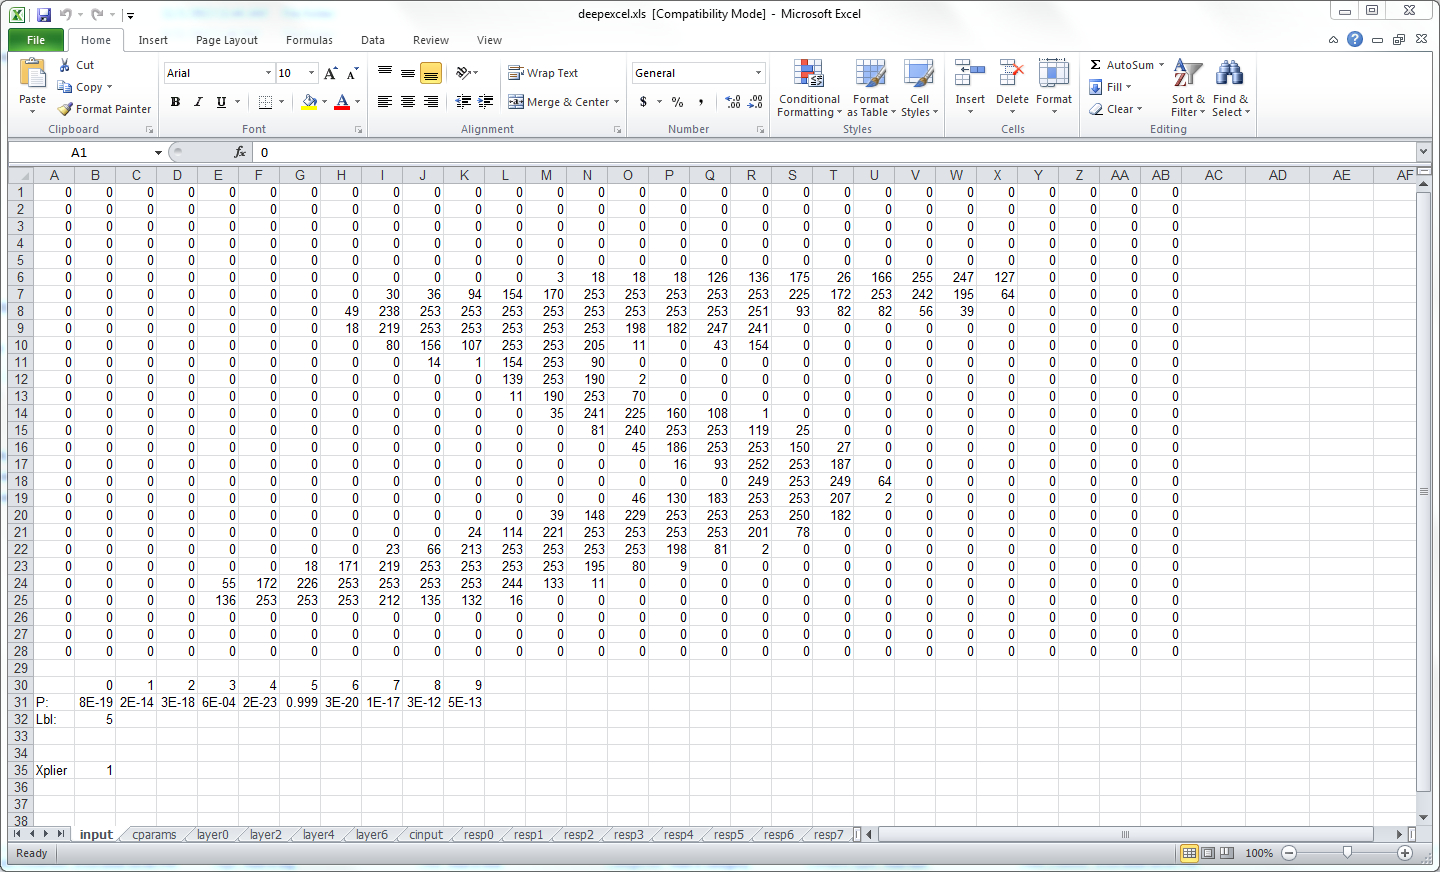 How To Learn Spreadsheets Regarding Deep Spreadsheets With Excelnet